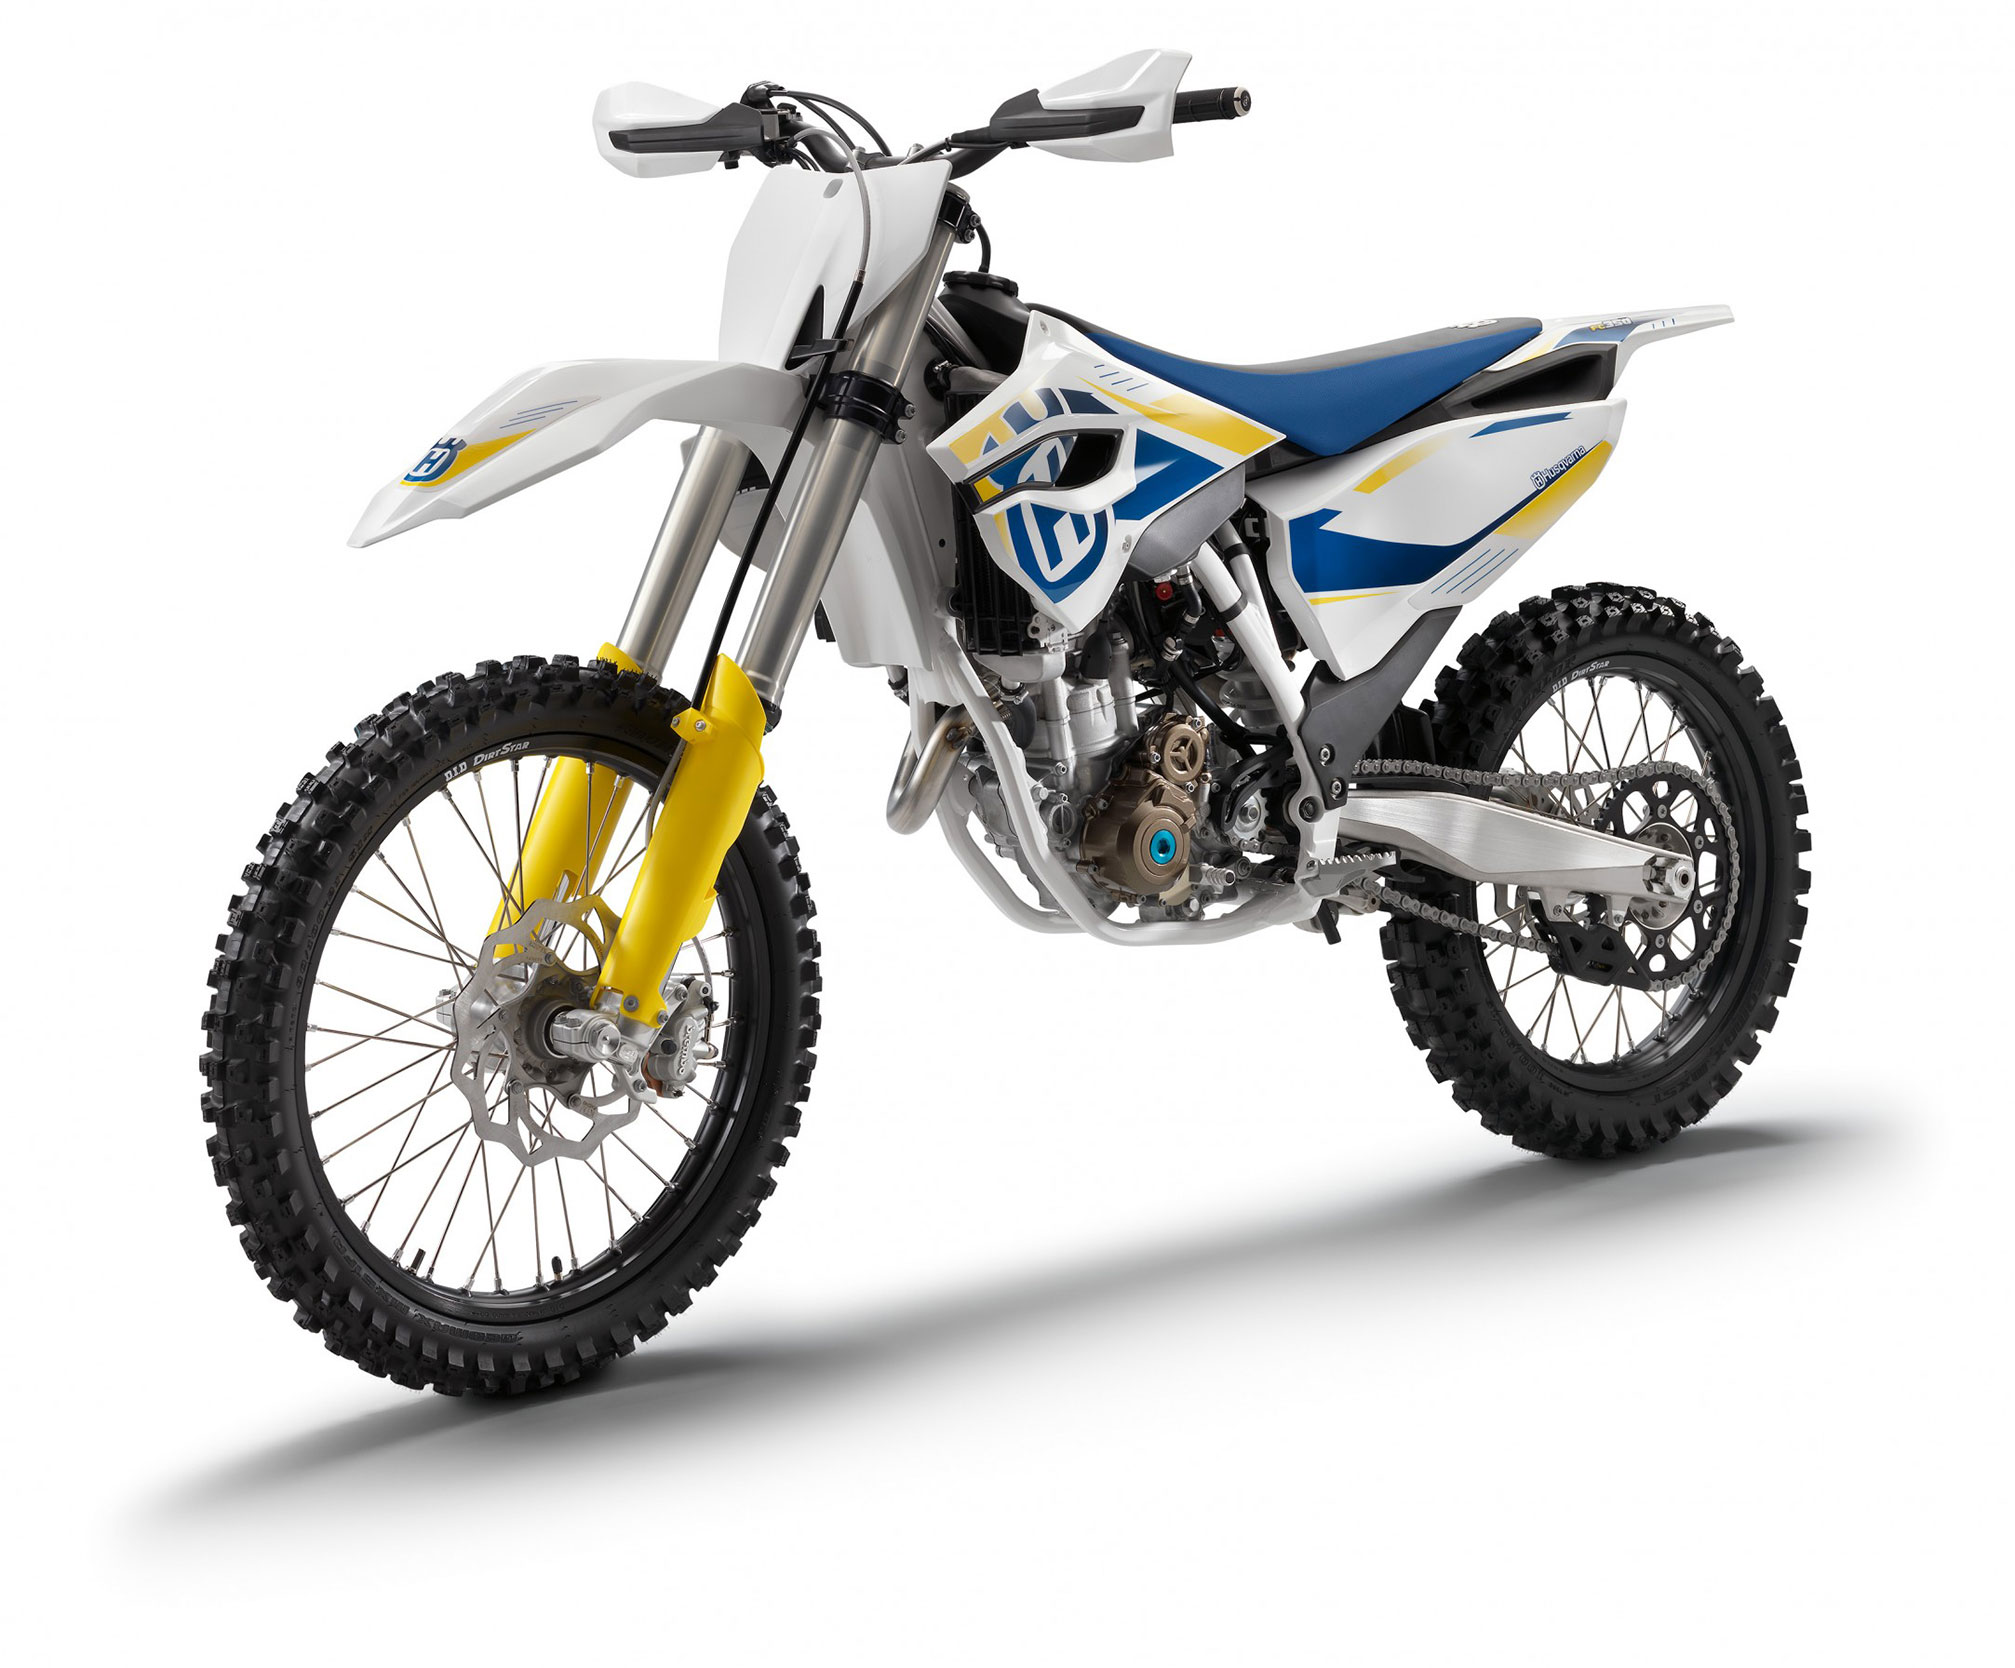 husqvarna fc 350 specs 2014 2015 autoevolution. Black Bedroom Furniture Sets. Home Design Ideas